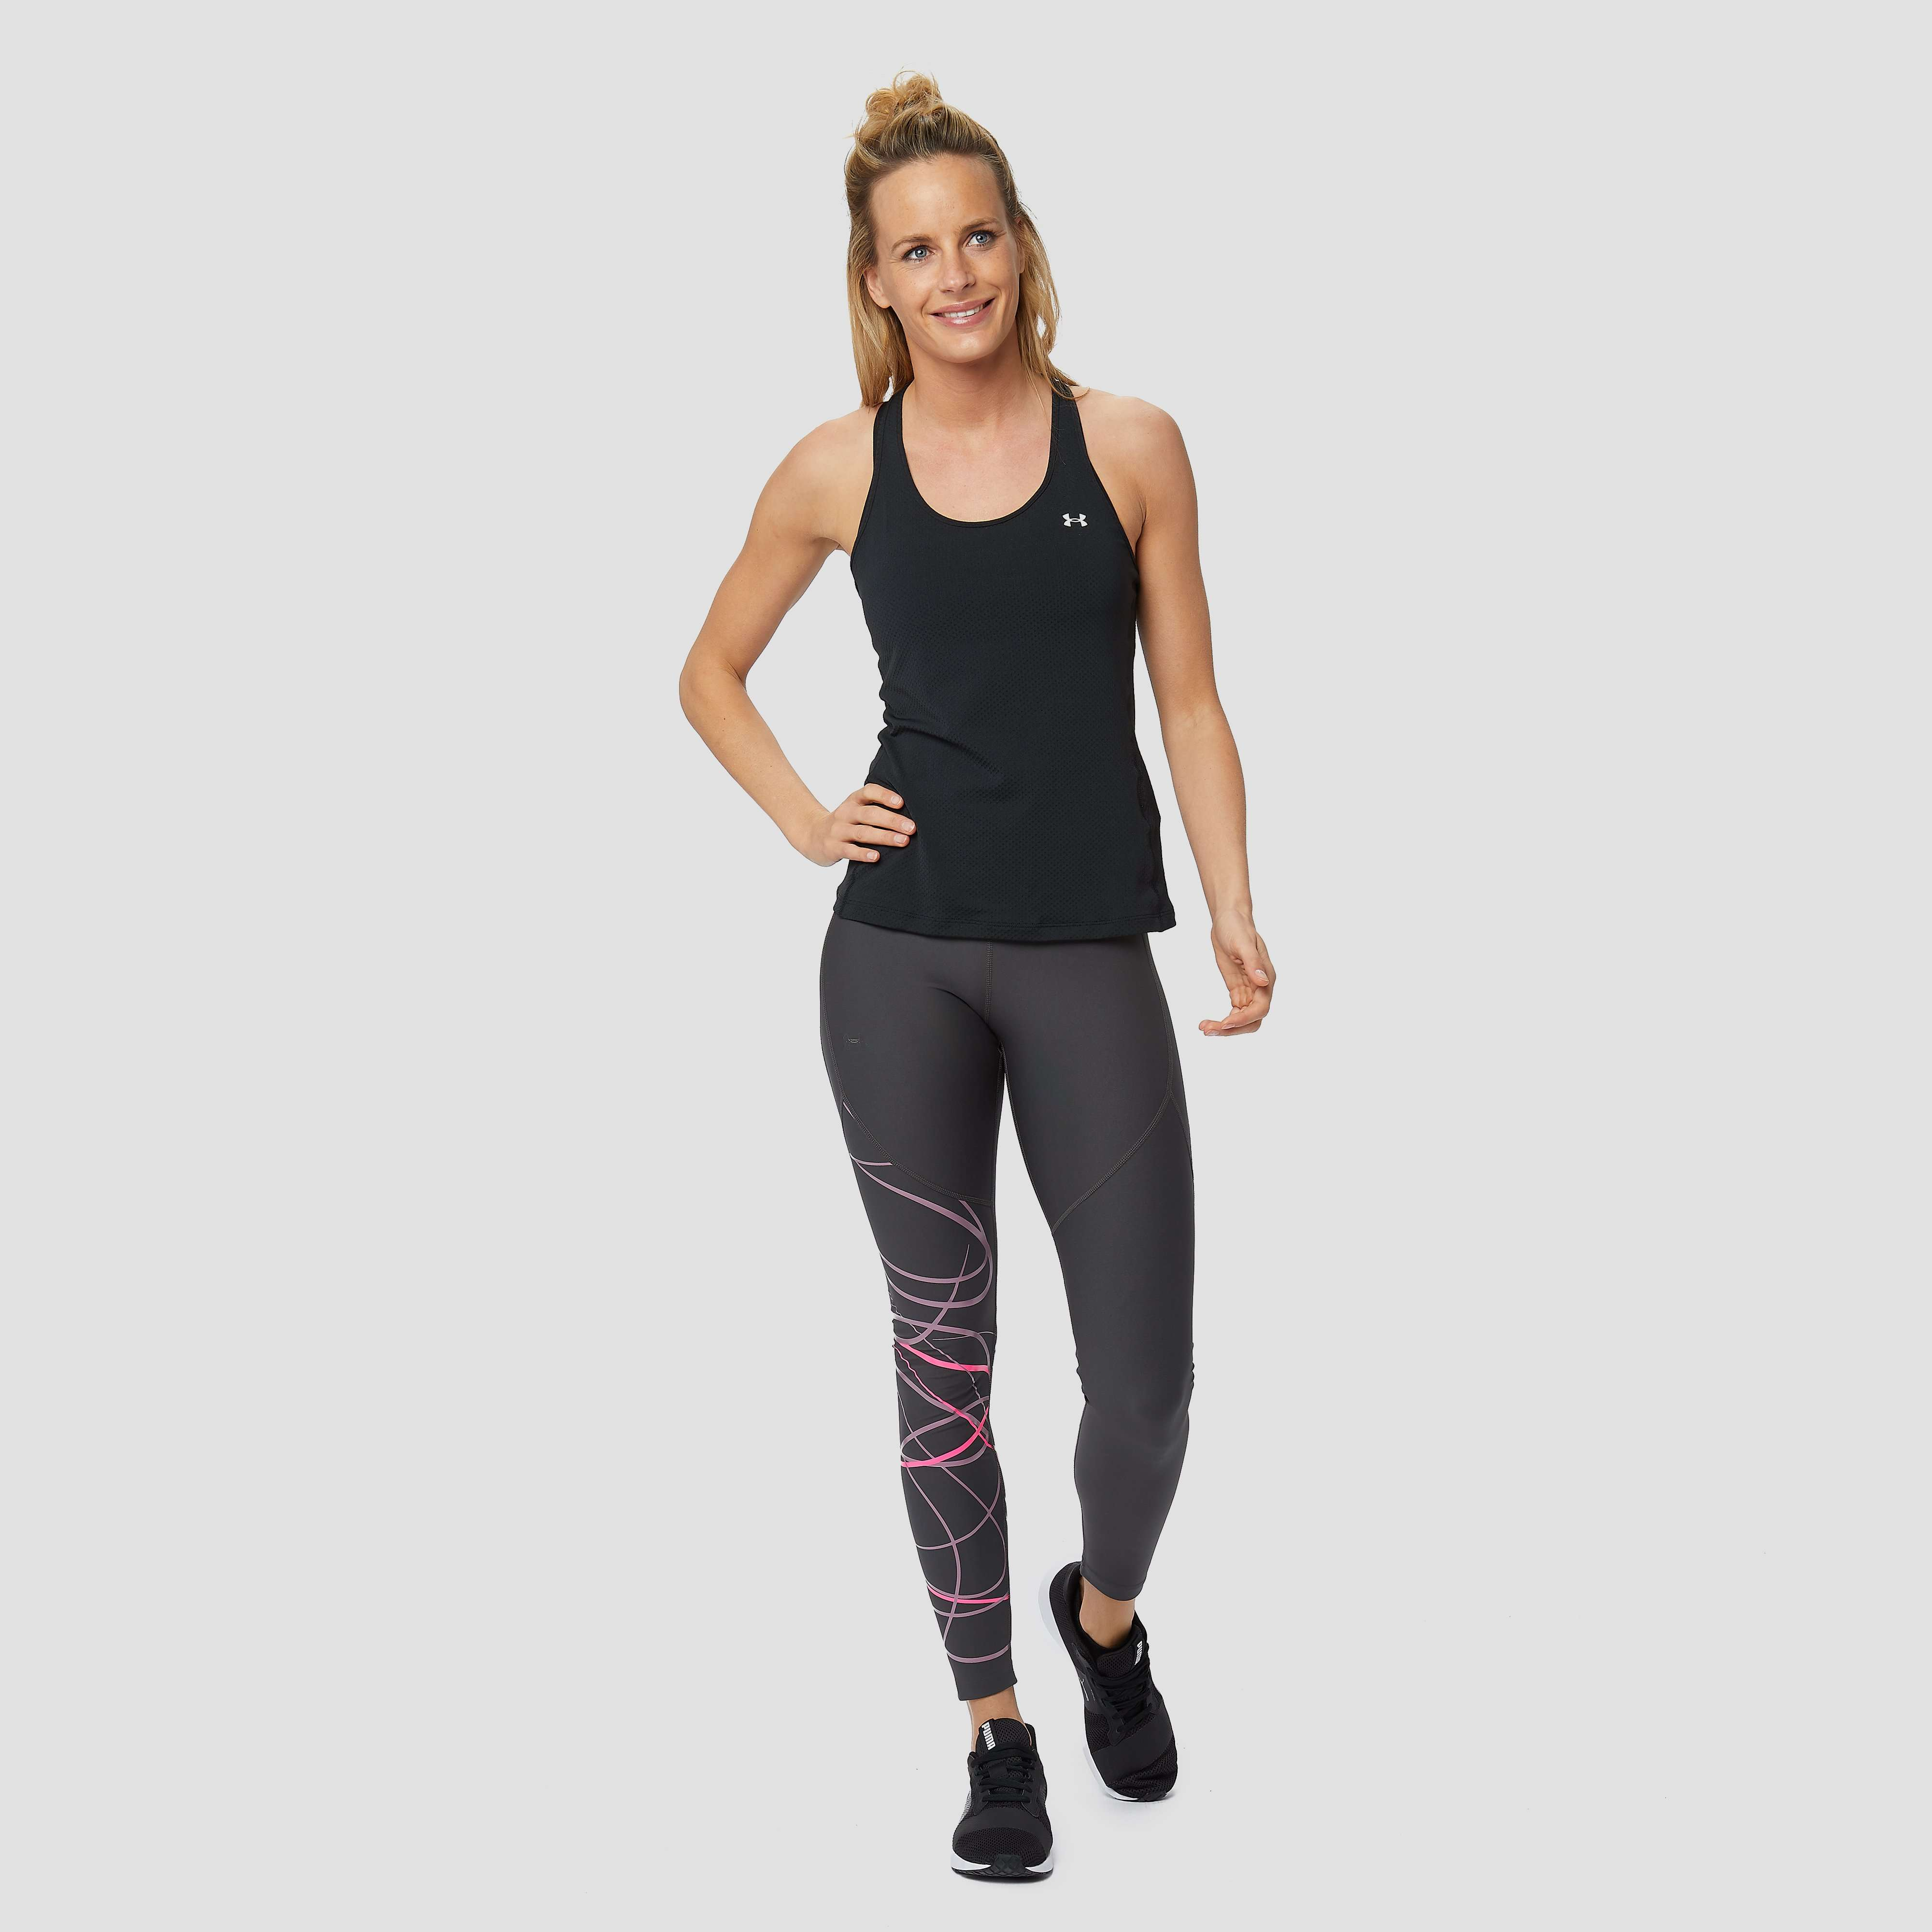 UNDER ARMOUR HEATGEAR RACER SPORTTANKTOP ZWART DAMES